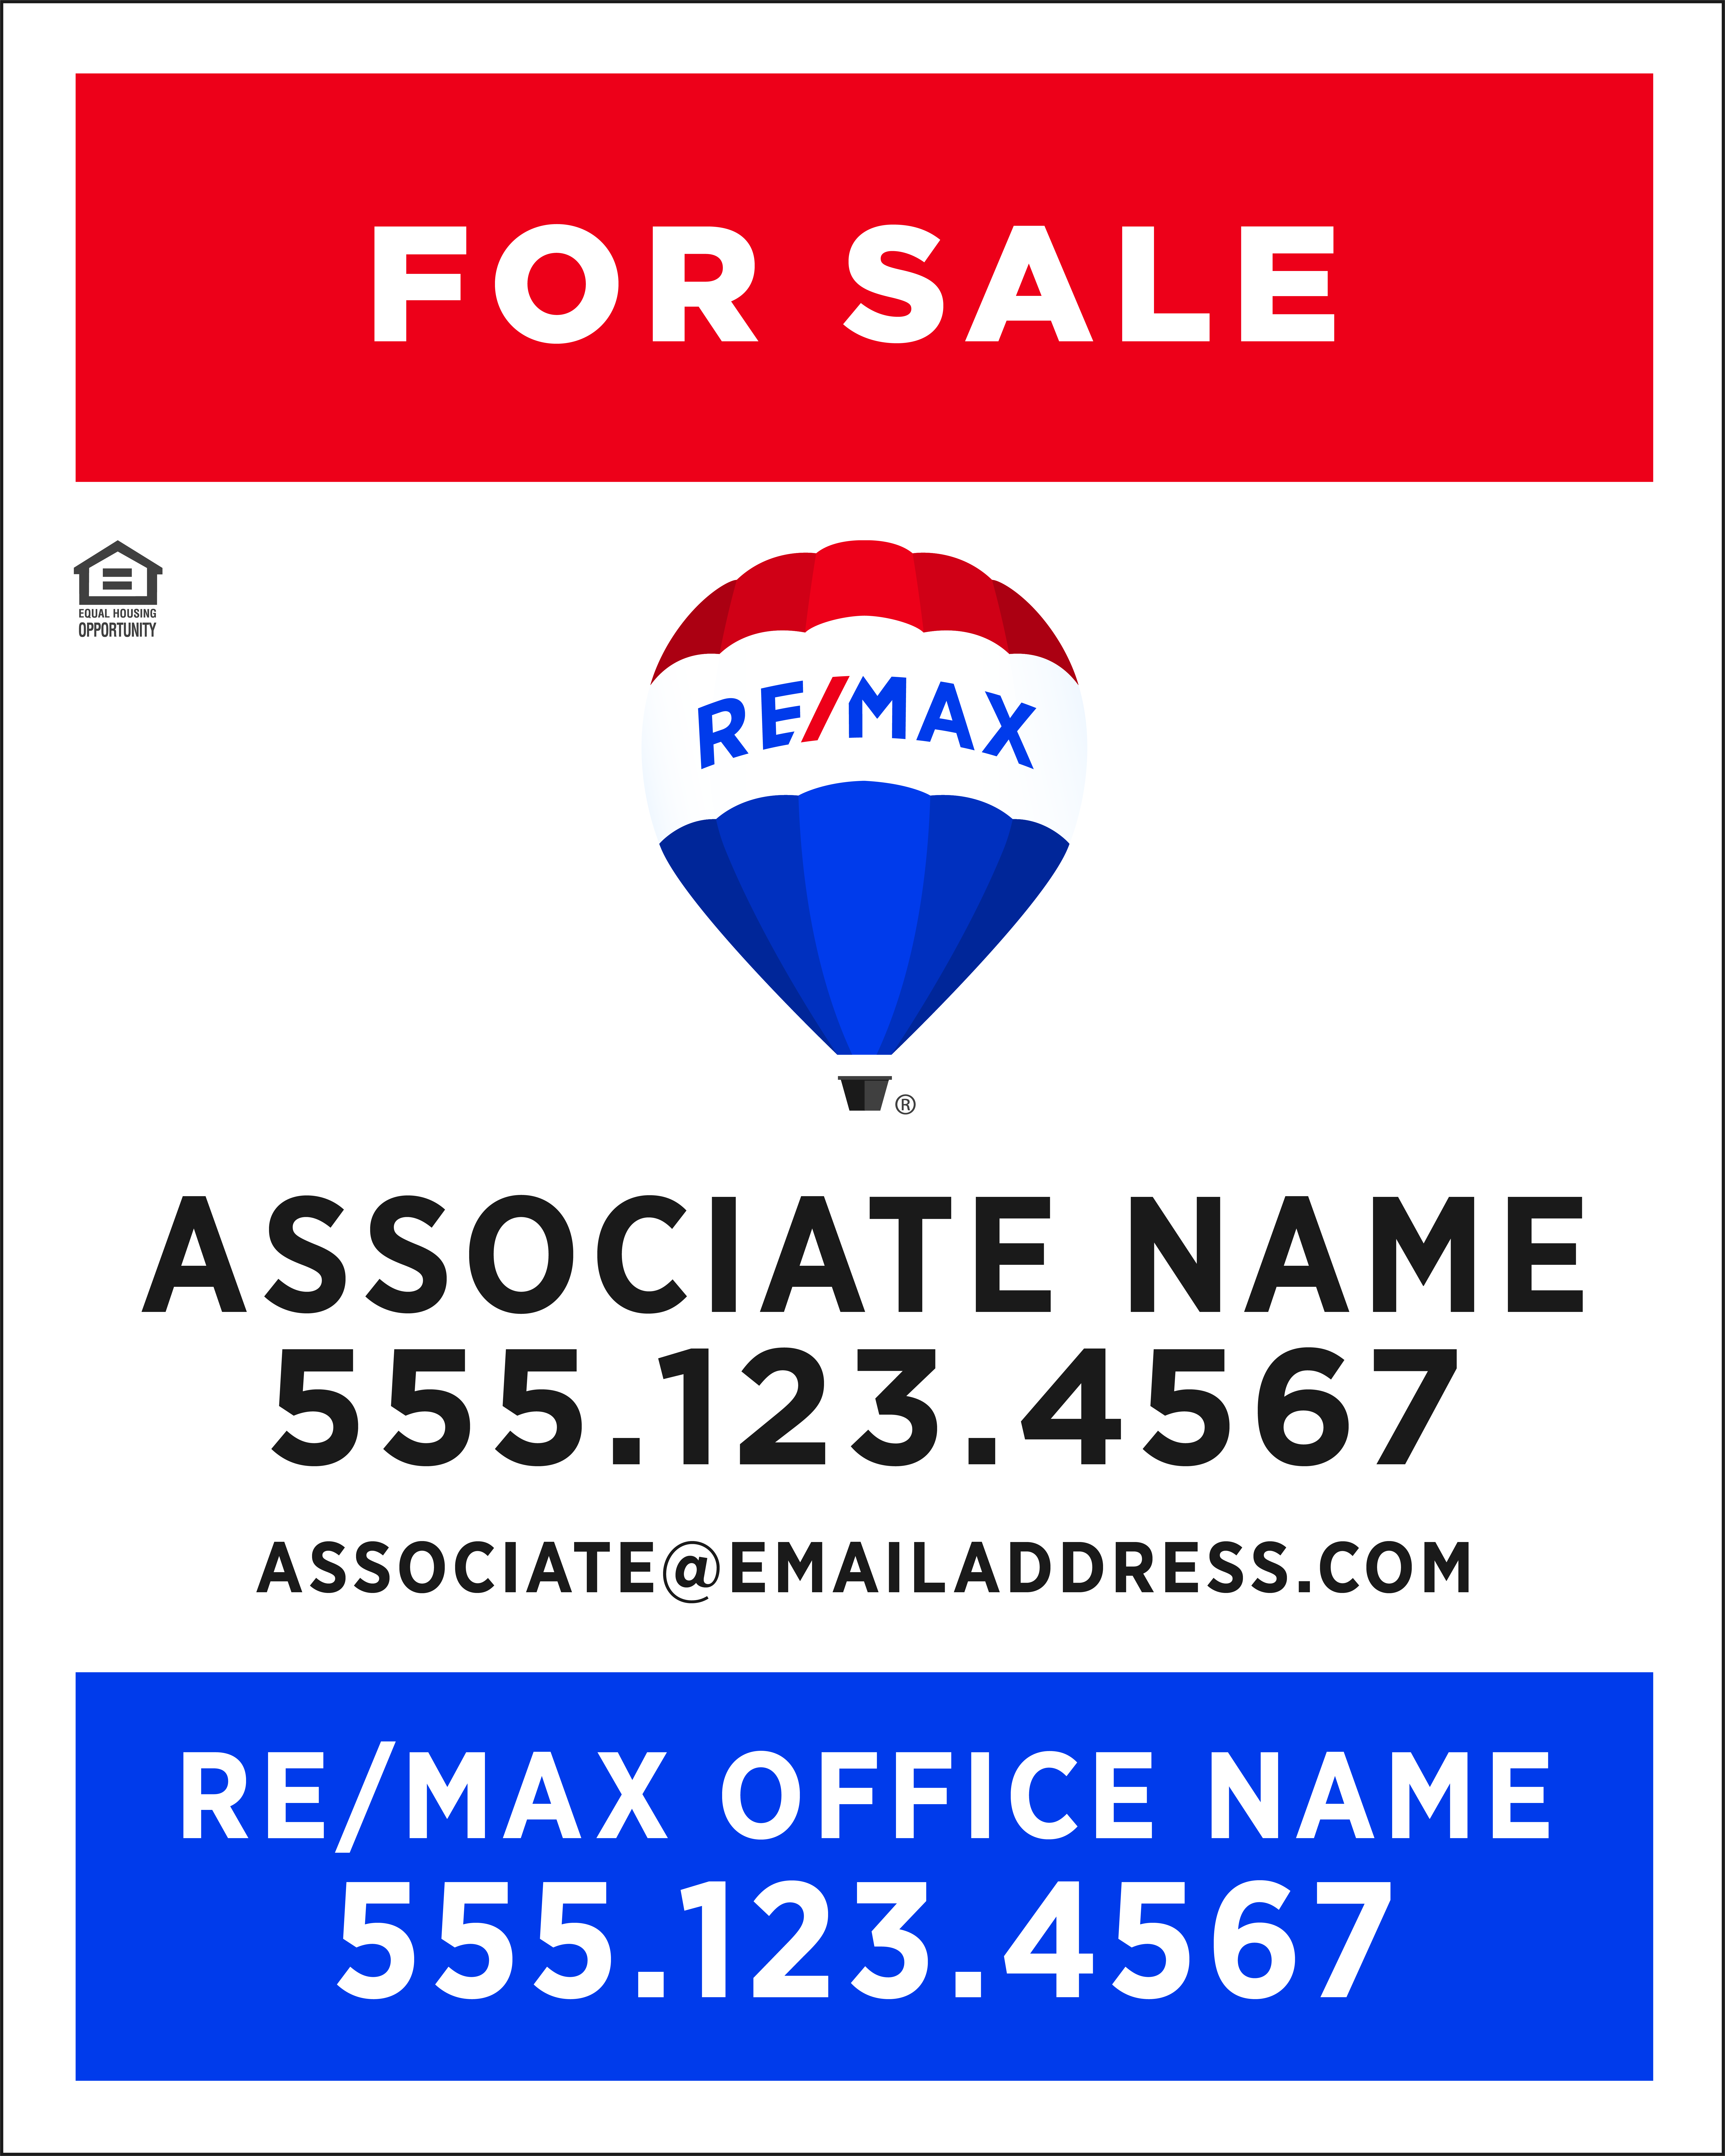 Remax has redesigned it's balloon and signs for 2017